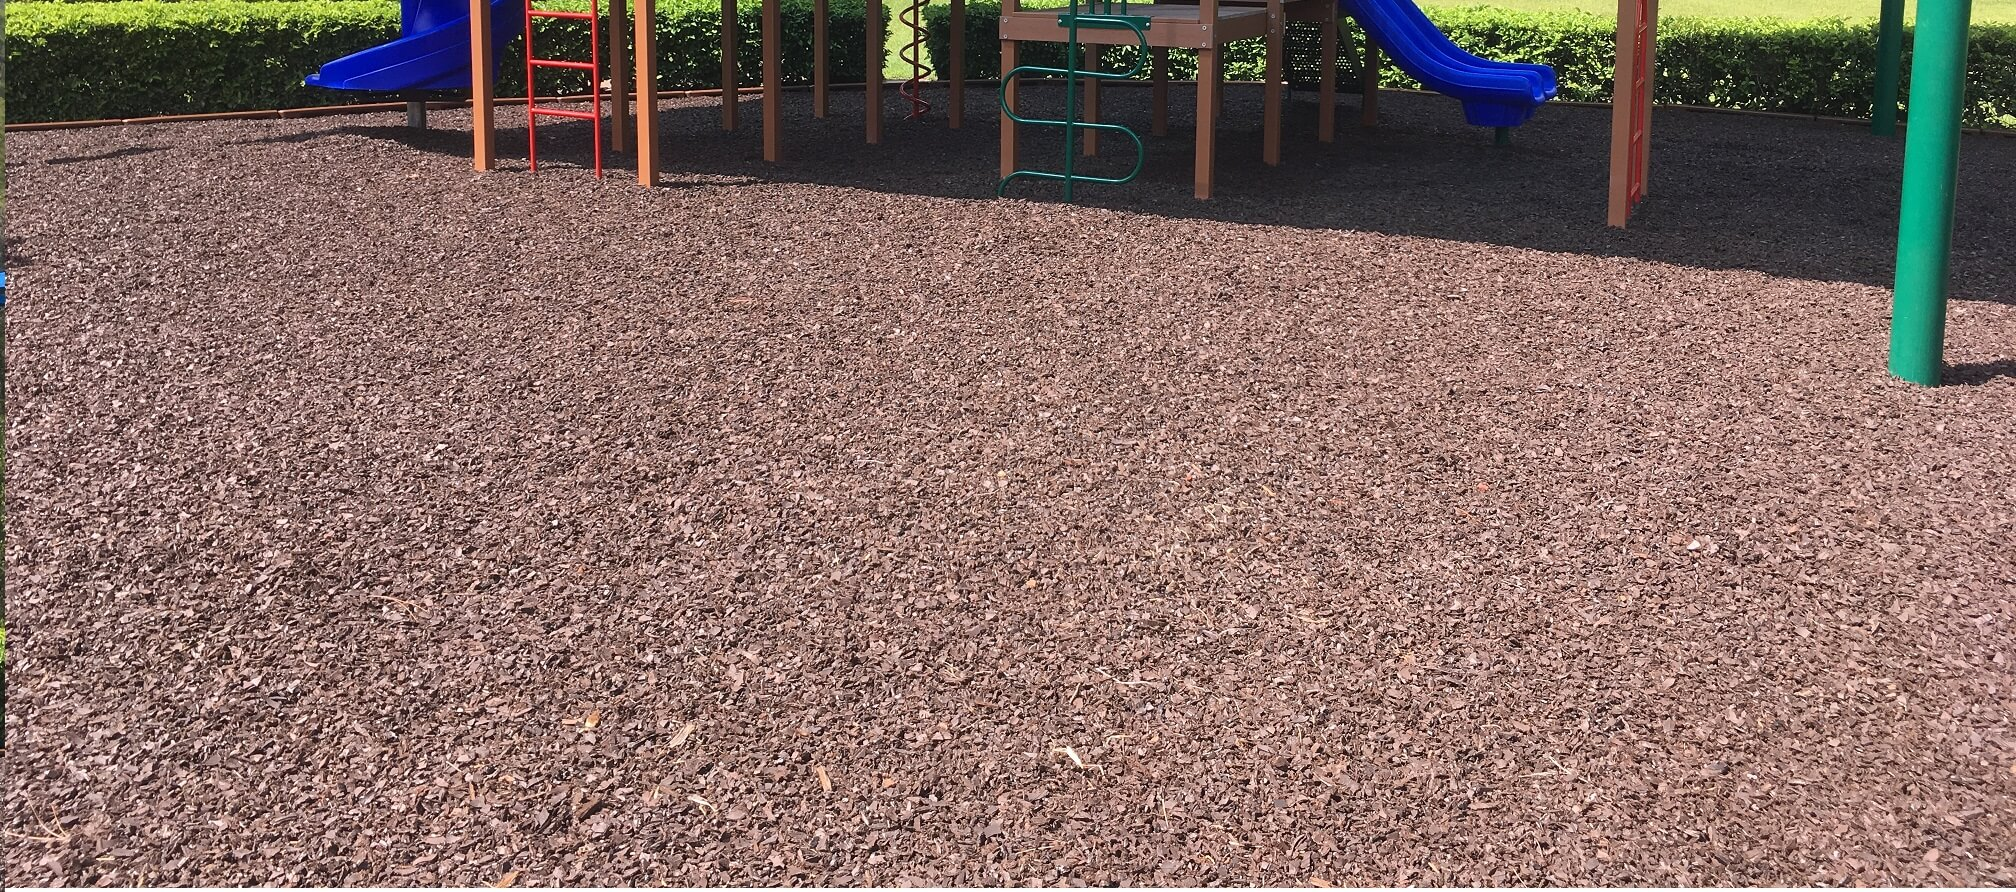 Rubber Mulch Long Lasting And Natural Looking